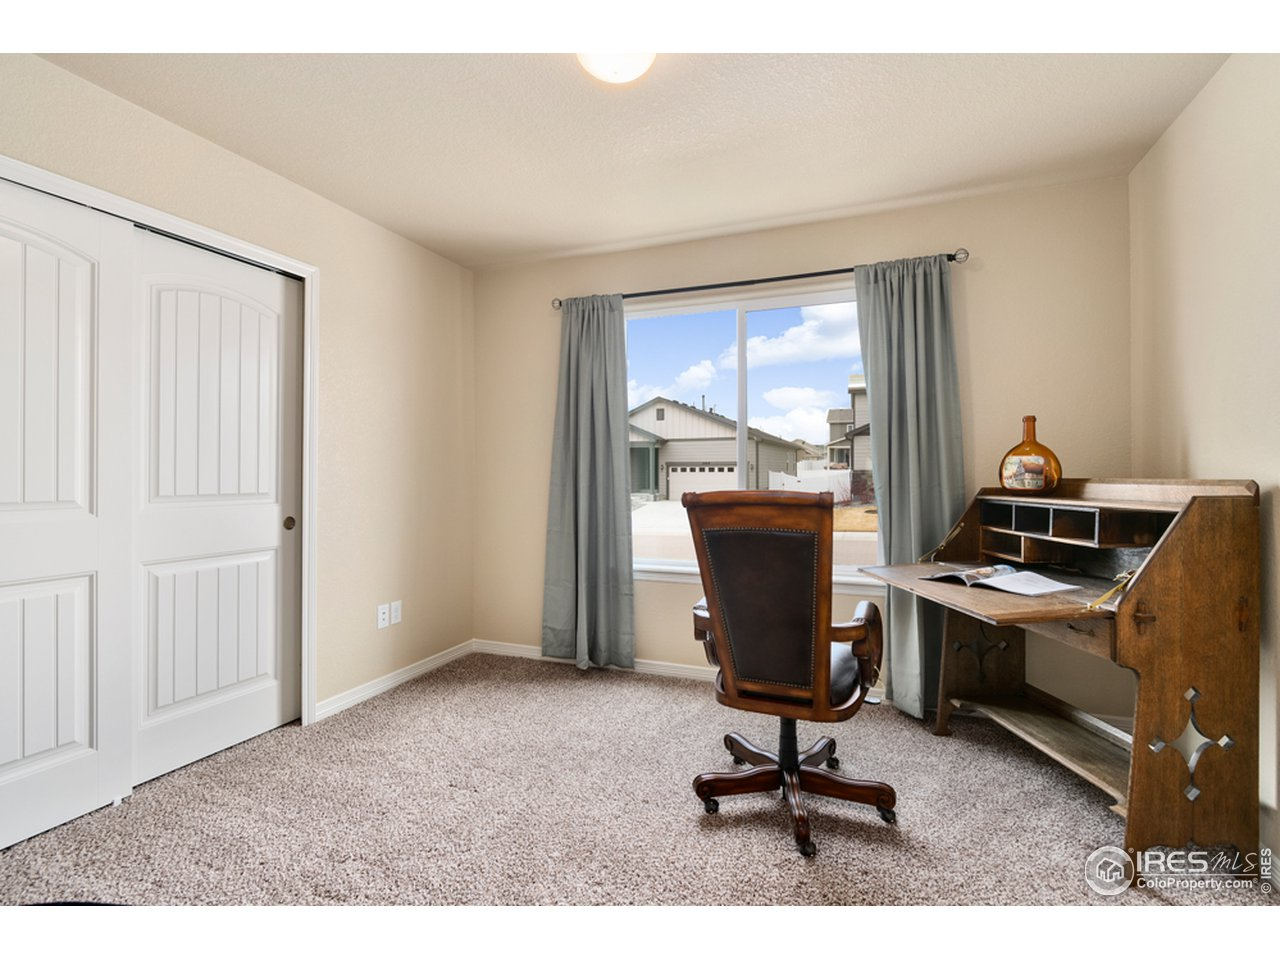 3rd bedroom or could be office